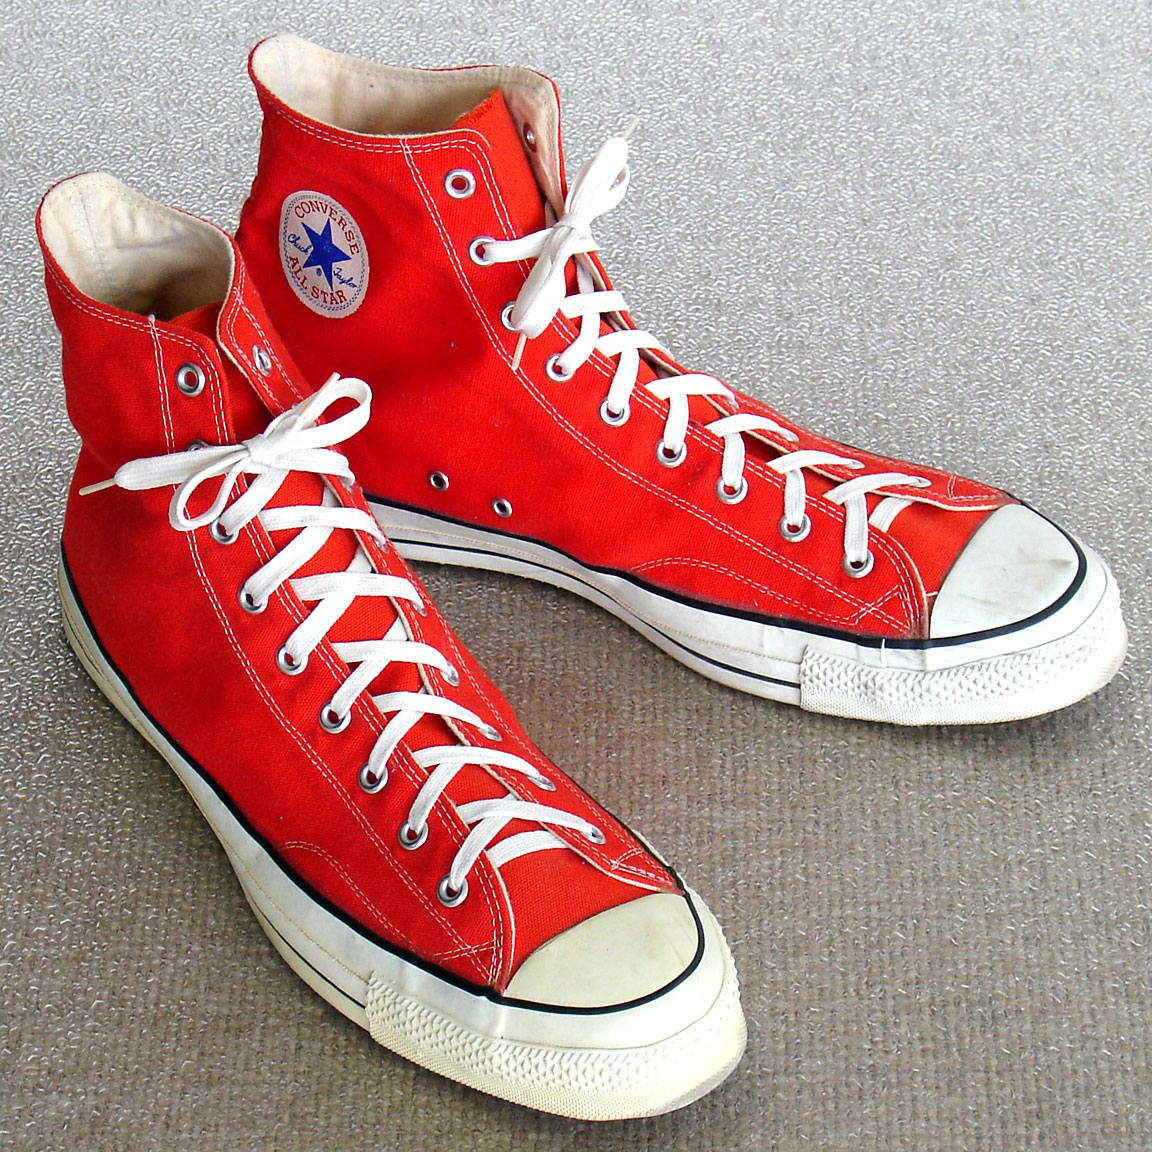 Converse High Top Vintage Chuck Taylor All Stars Shoe